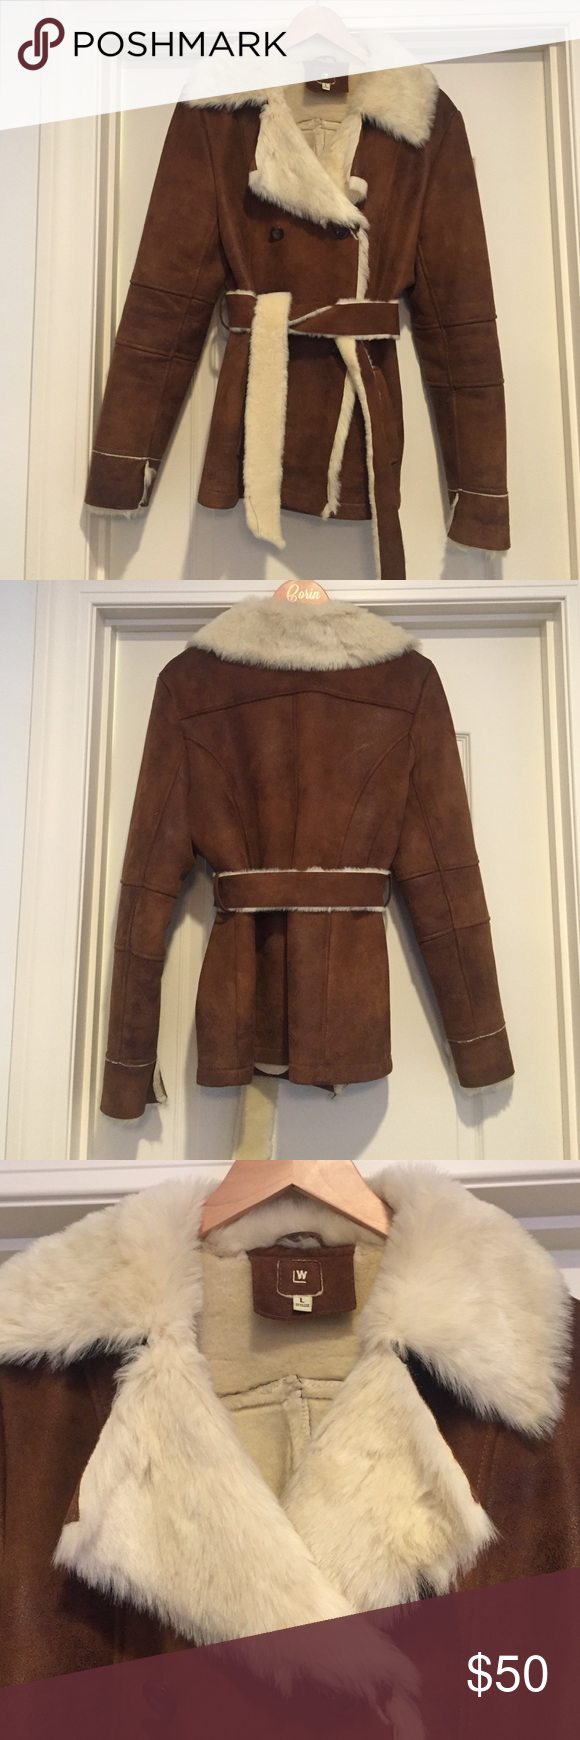 Suede/leather style fur lined coat Brown fur lined jacket